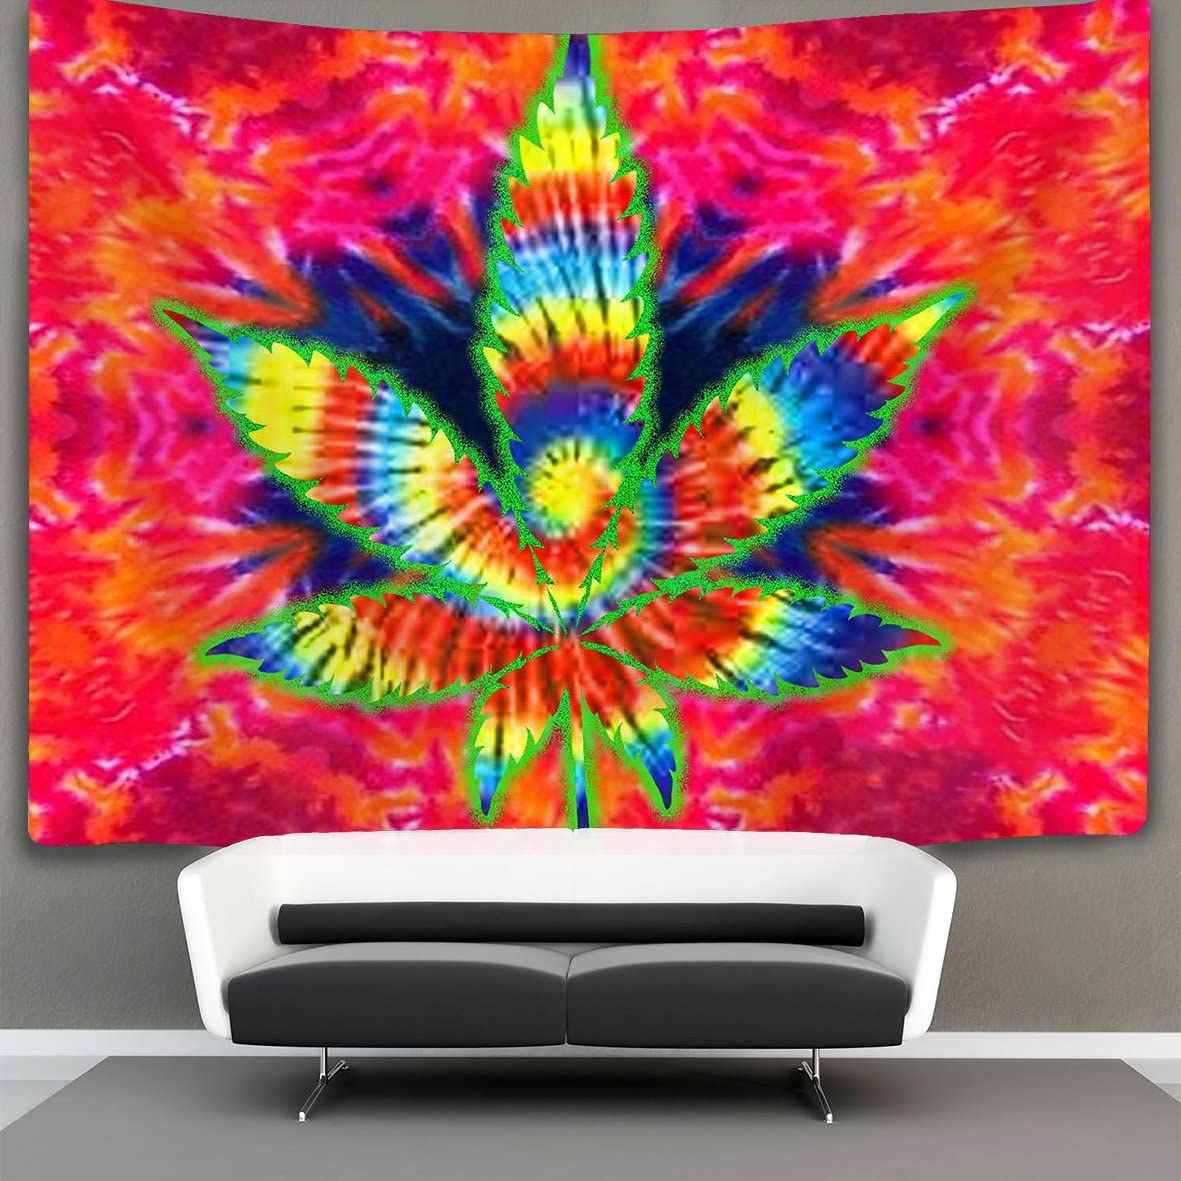 NiYoung Trippy Pot Leaf Marijuana Weed Wall Tapestry Hippie Art Tapestry Wall Hanging Home Decor Extra Large tablecloths 60×90 inches for Bedroom Living Room Dorm Room